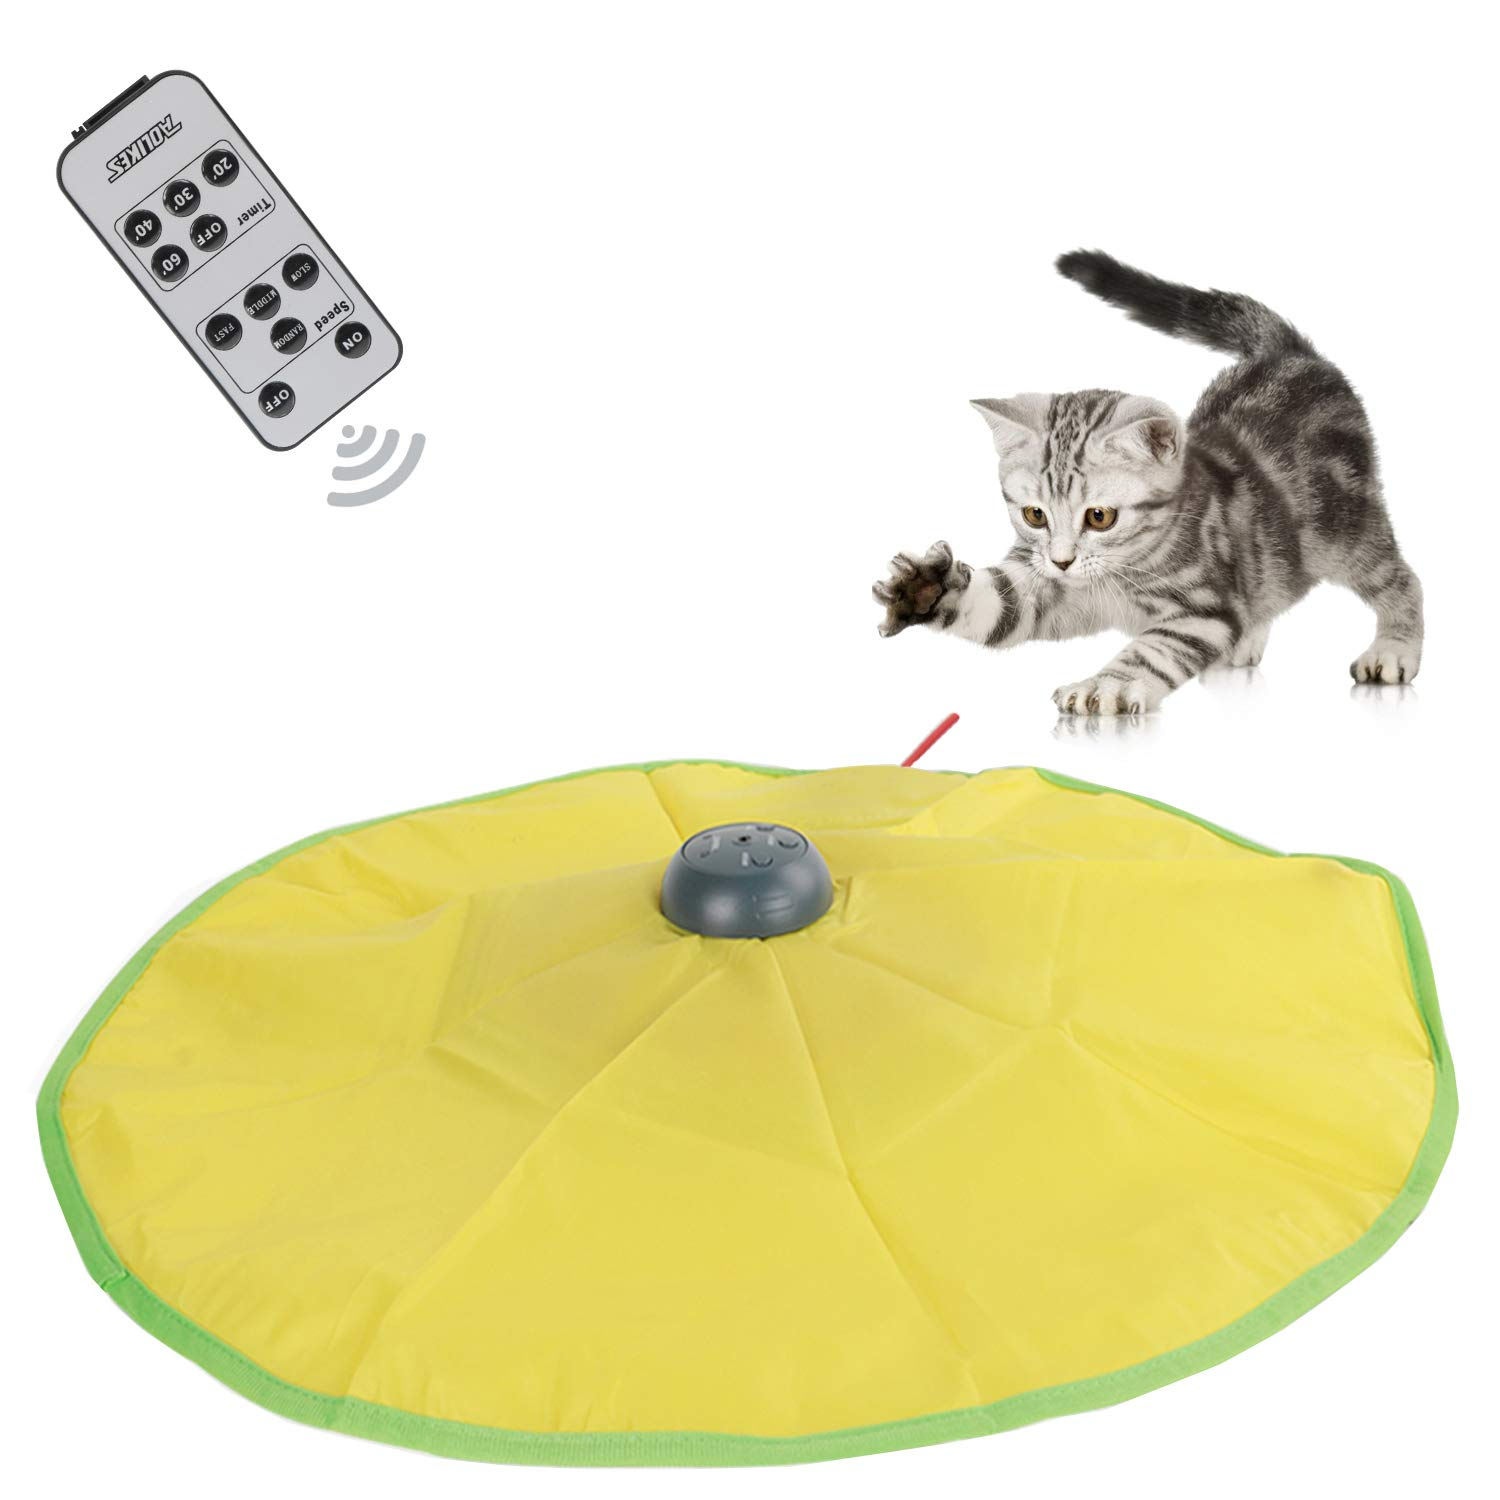 Interactive Cat Toys,Durable Smart Cat Toys with Remote Multiple Timers,Undercover Motorized Mouse Tail for All Ages Cat, Automatic Rotating Catch Training for Indoor Cats (Cat toys V4 Version) by AOLIKES (Image #1)